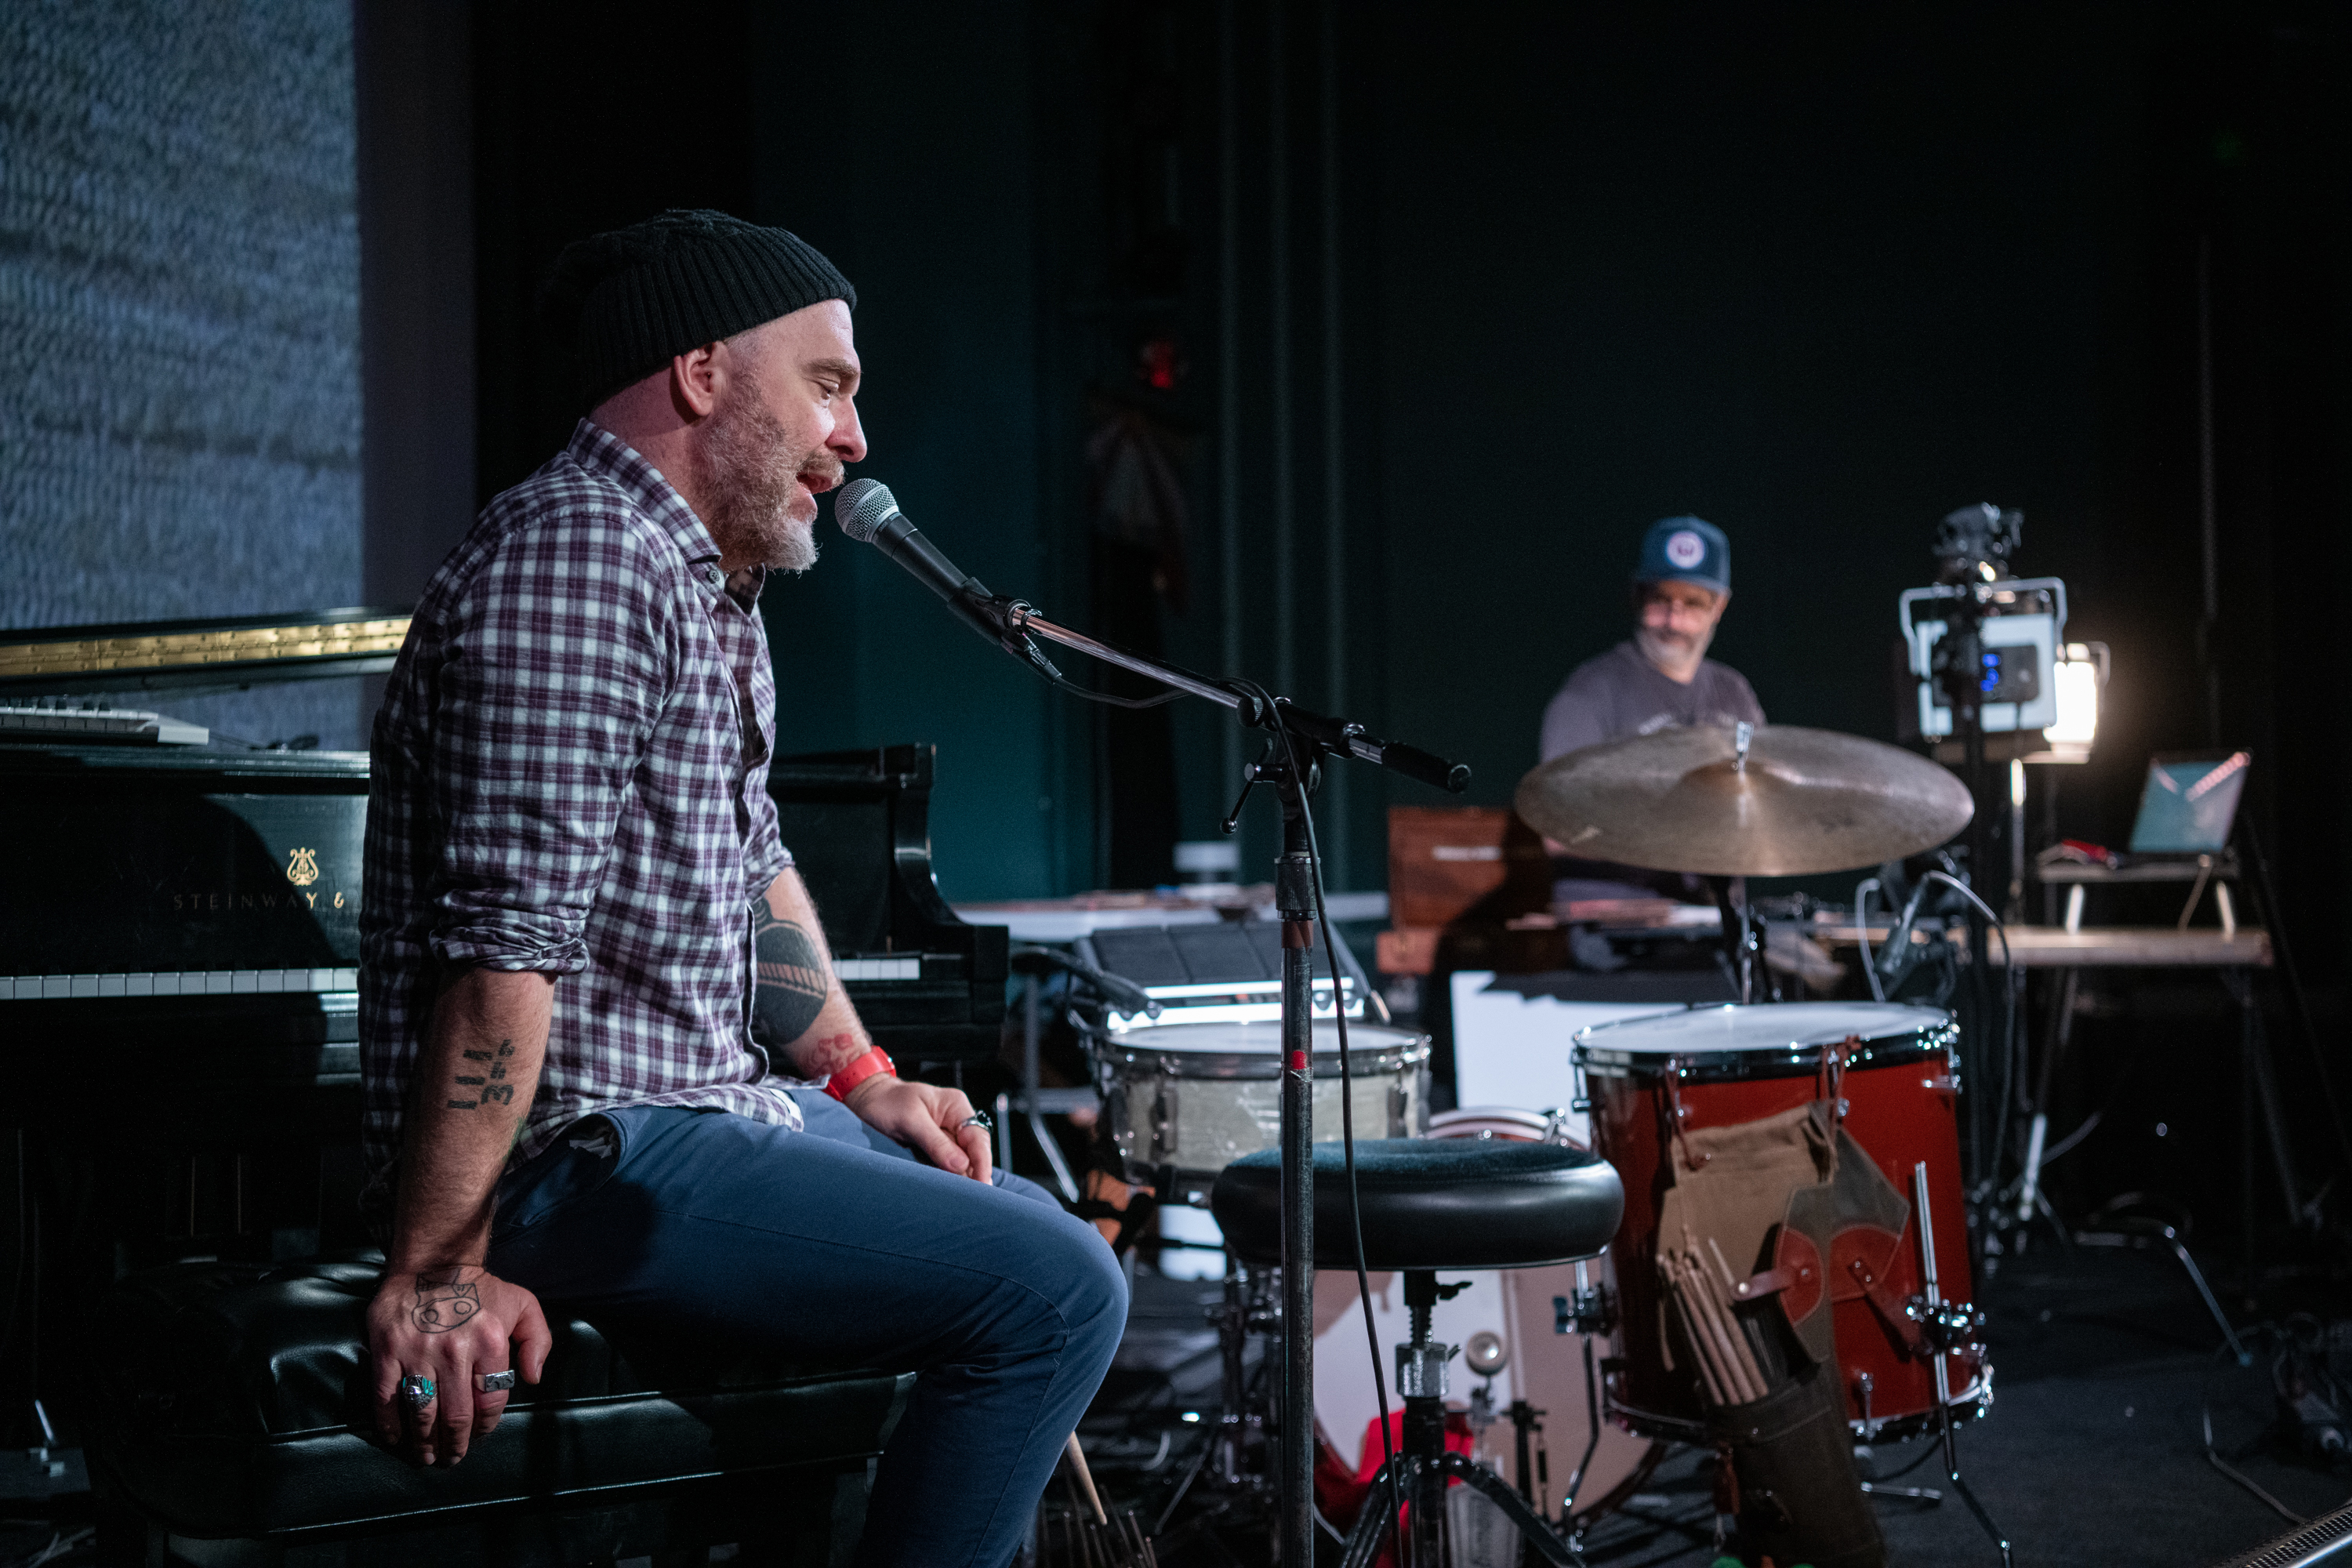 Photographer Alec Soth and drummer Dave King rehearse their new project, The Palms, at the Parkway Theater.